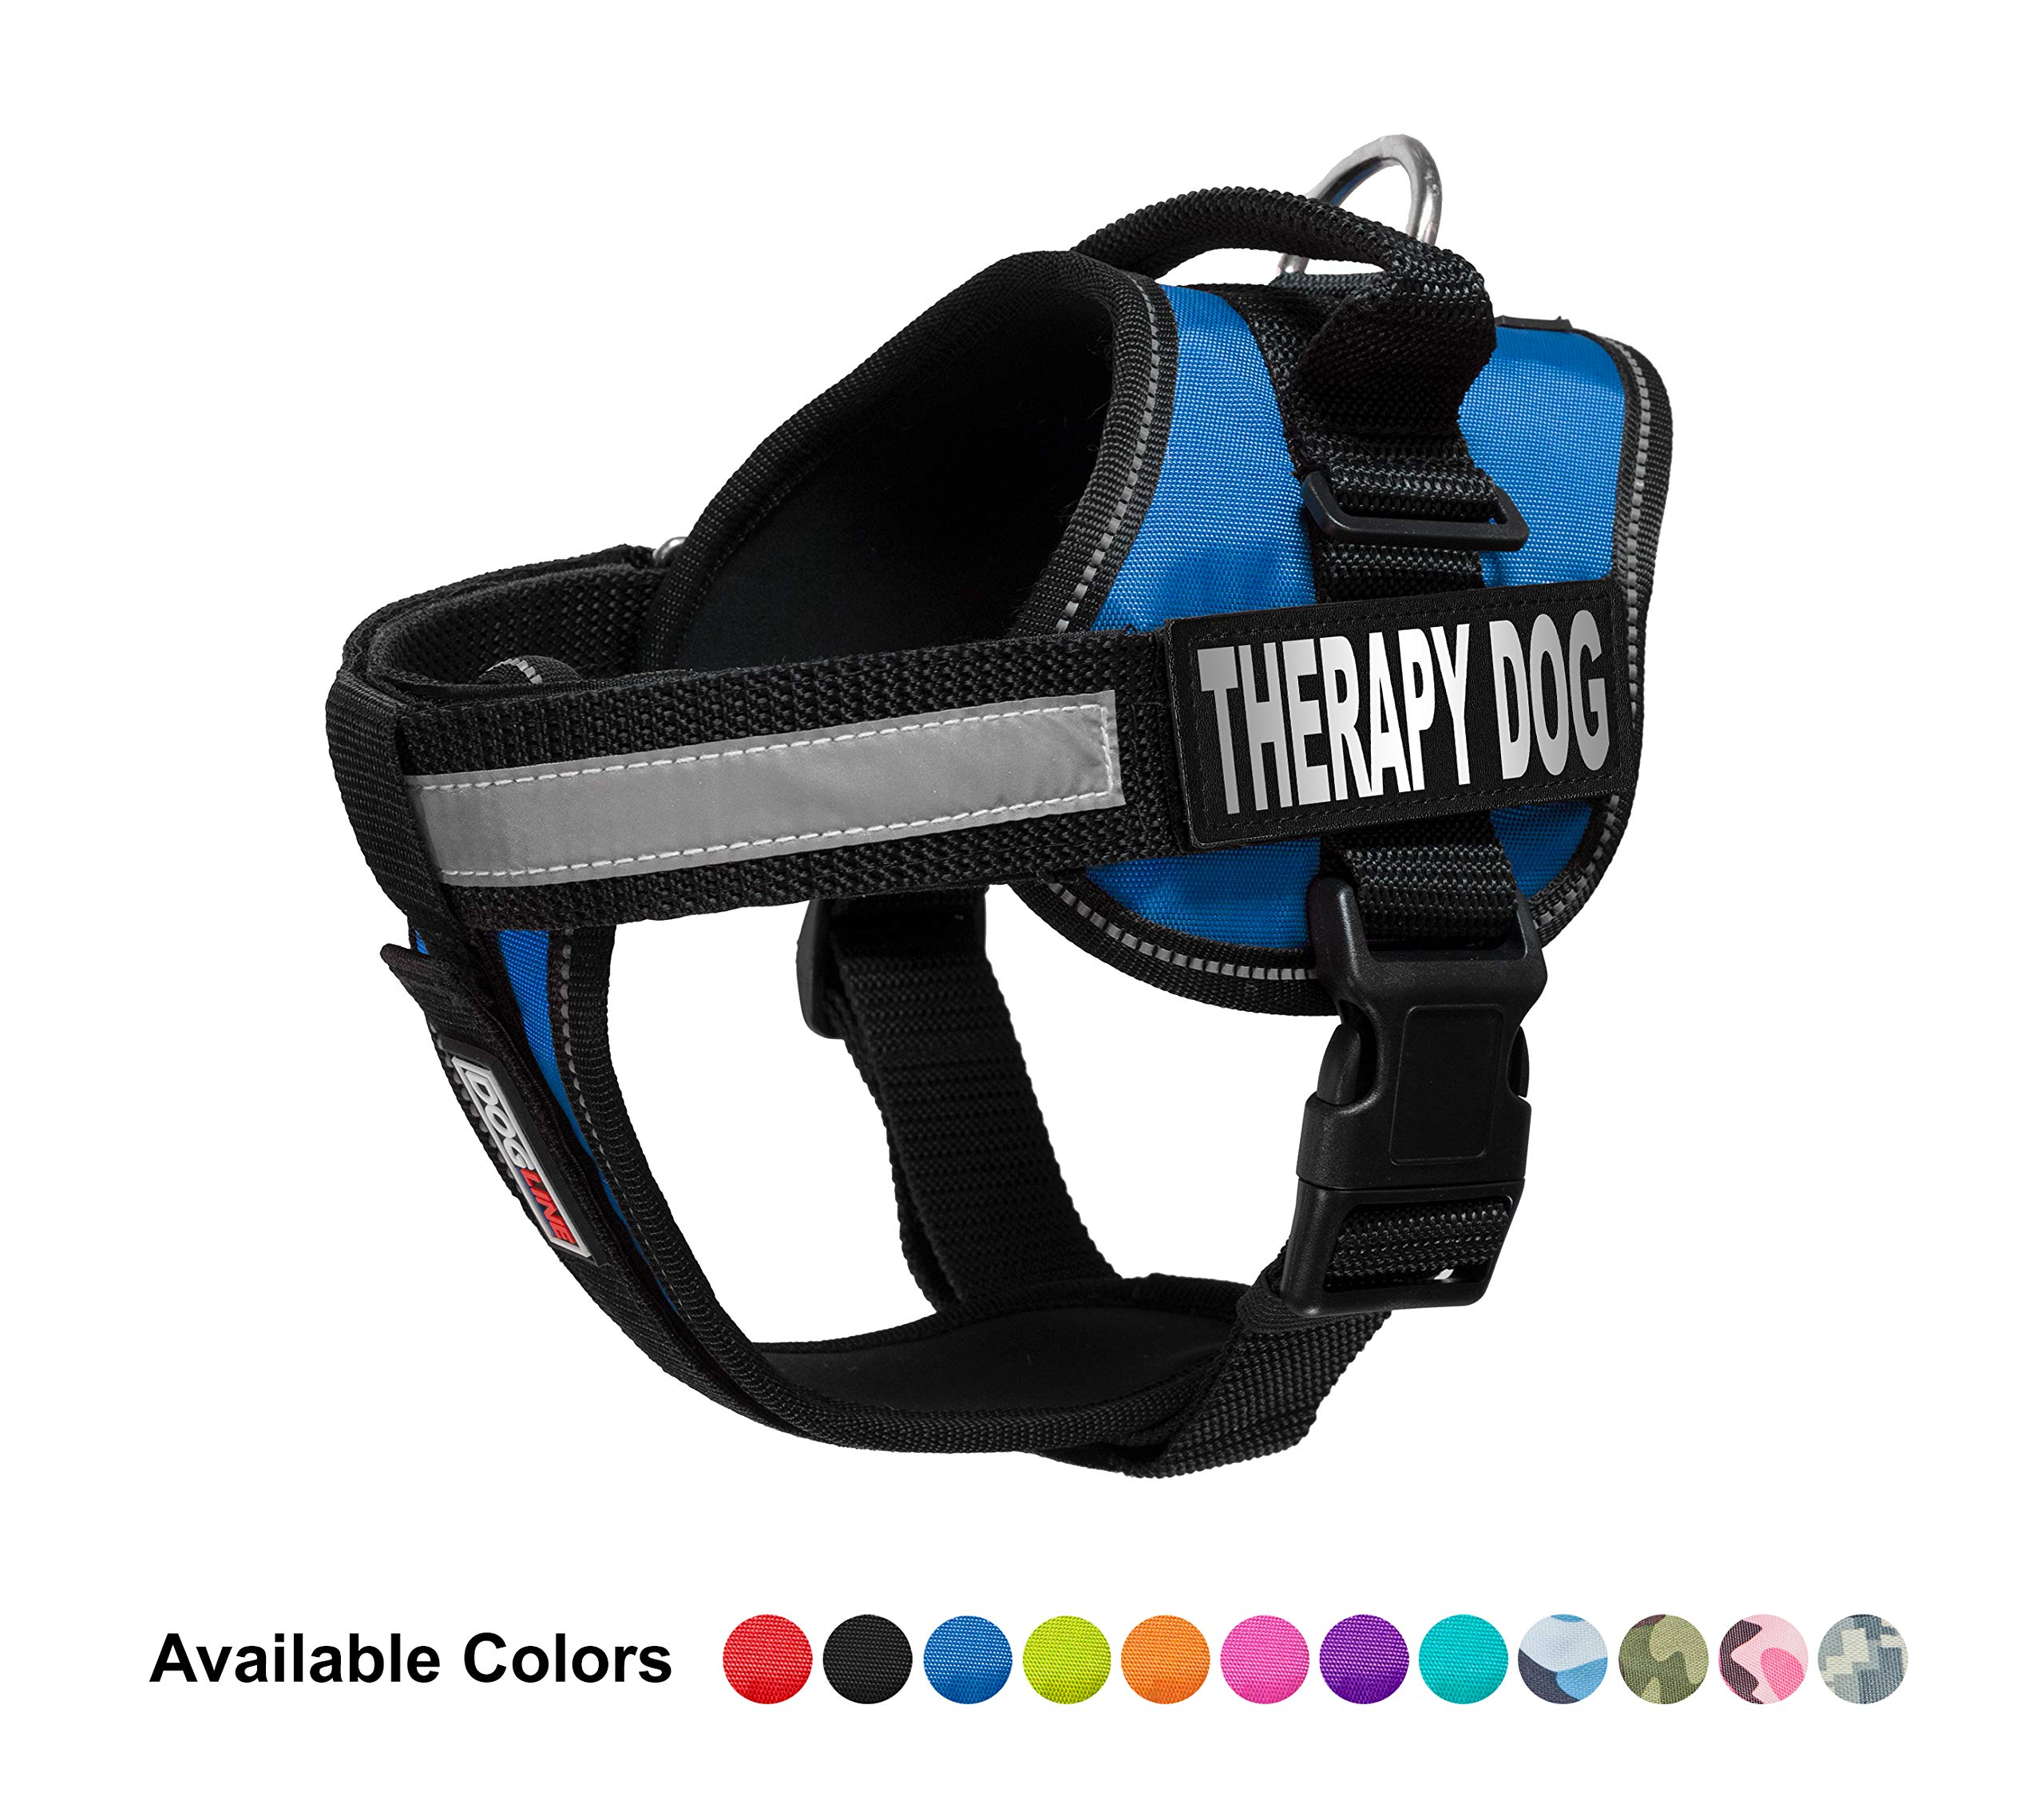 Dogline Vest Harness for Dogs and 2 Removable Therapy Dog Patches, Large/28 to 38'', Blue